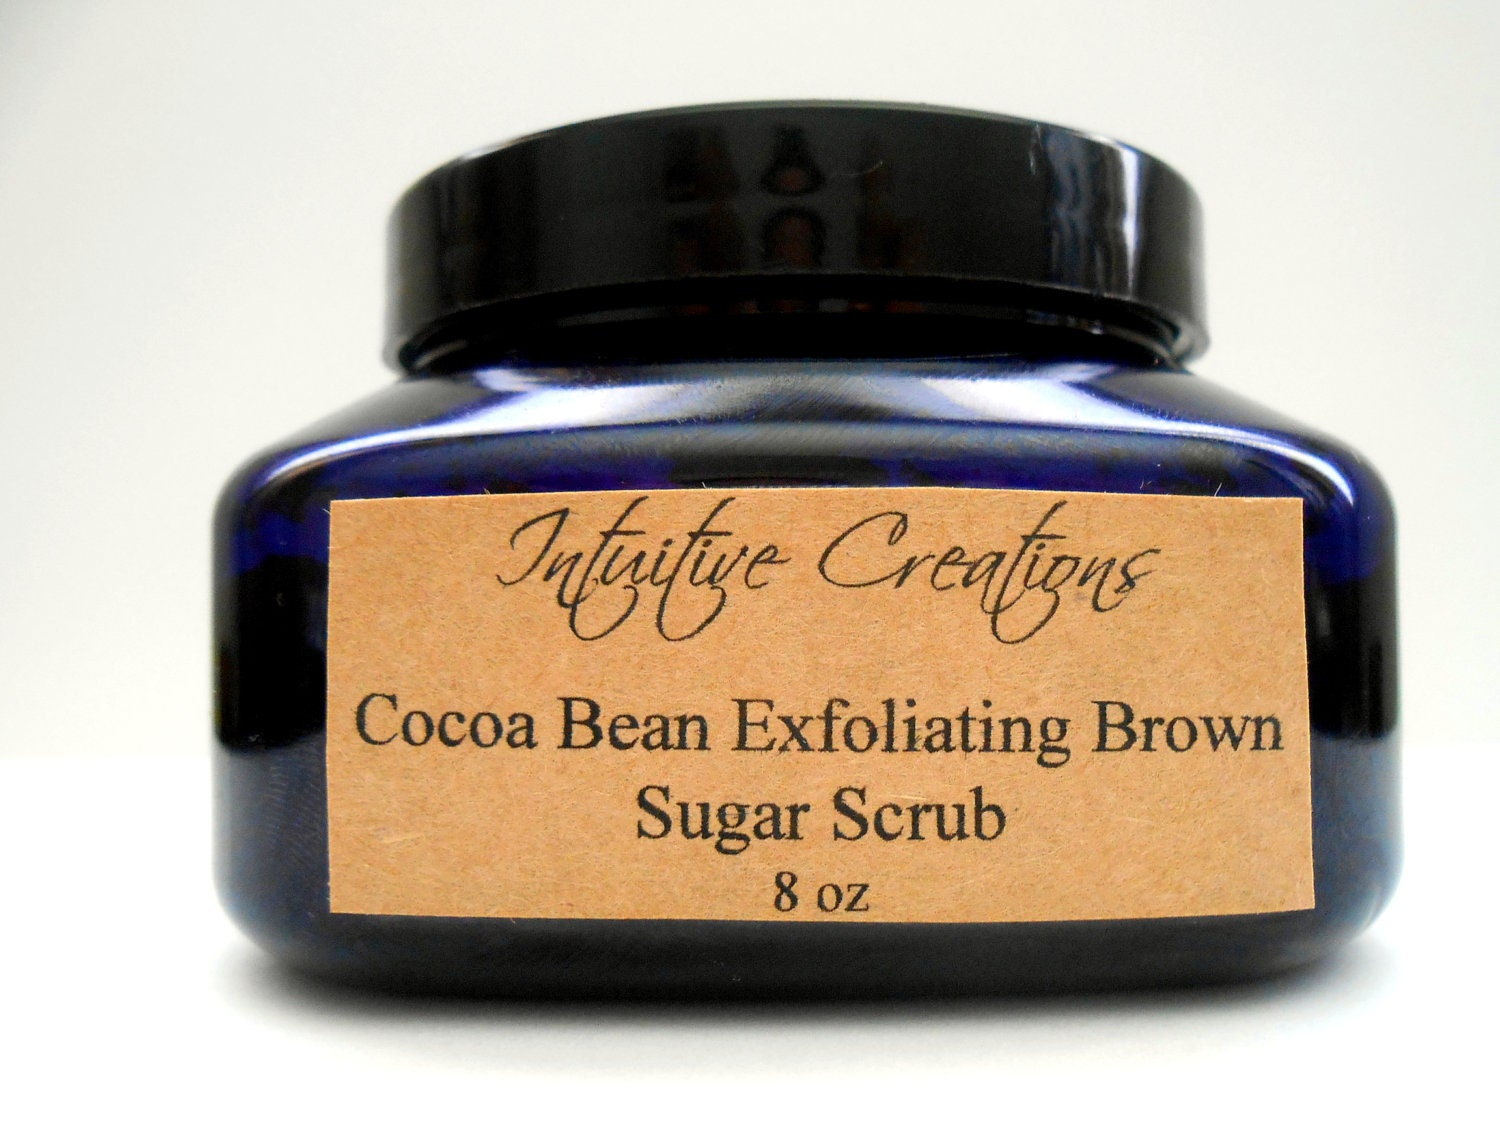 Organic Natural Cocoa Bean Exfoliating Brown Sugar Scrub 8 oz